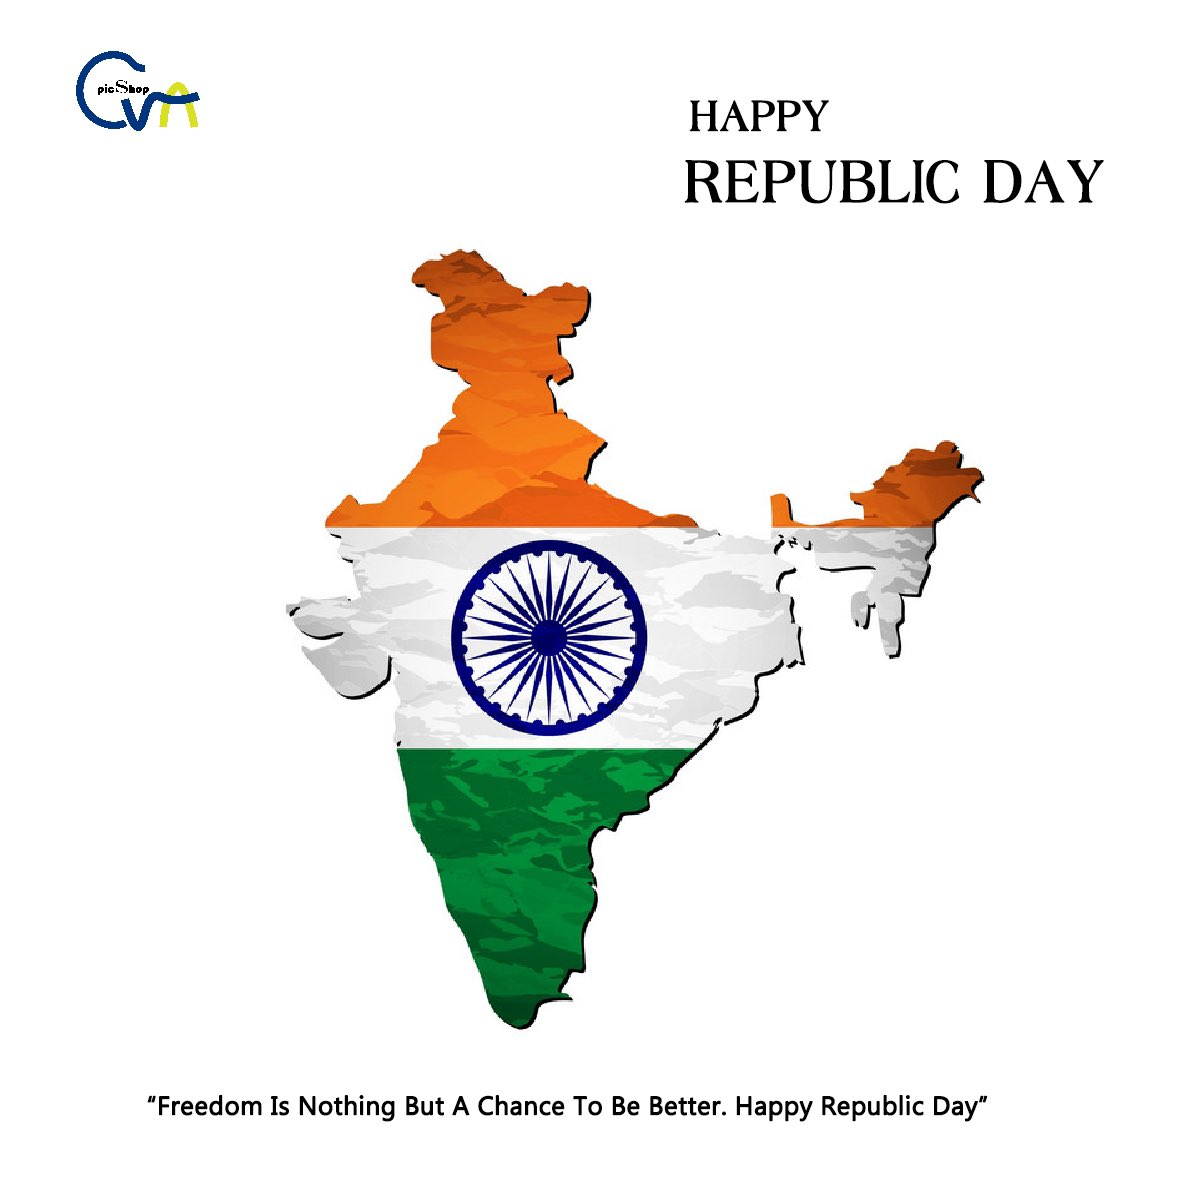 #HappyRepublicDay##republicday #india #indian #photography #happyrepublicday #republicdayindia #love #patriots #national #bhfyp #indianarmy #republic #photos #republicdayparade #k #jaihind #editingapps #photoshop #lightroom #republicdaycelebration #mumbai